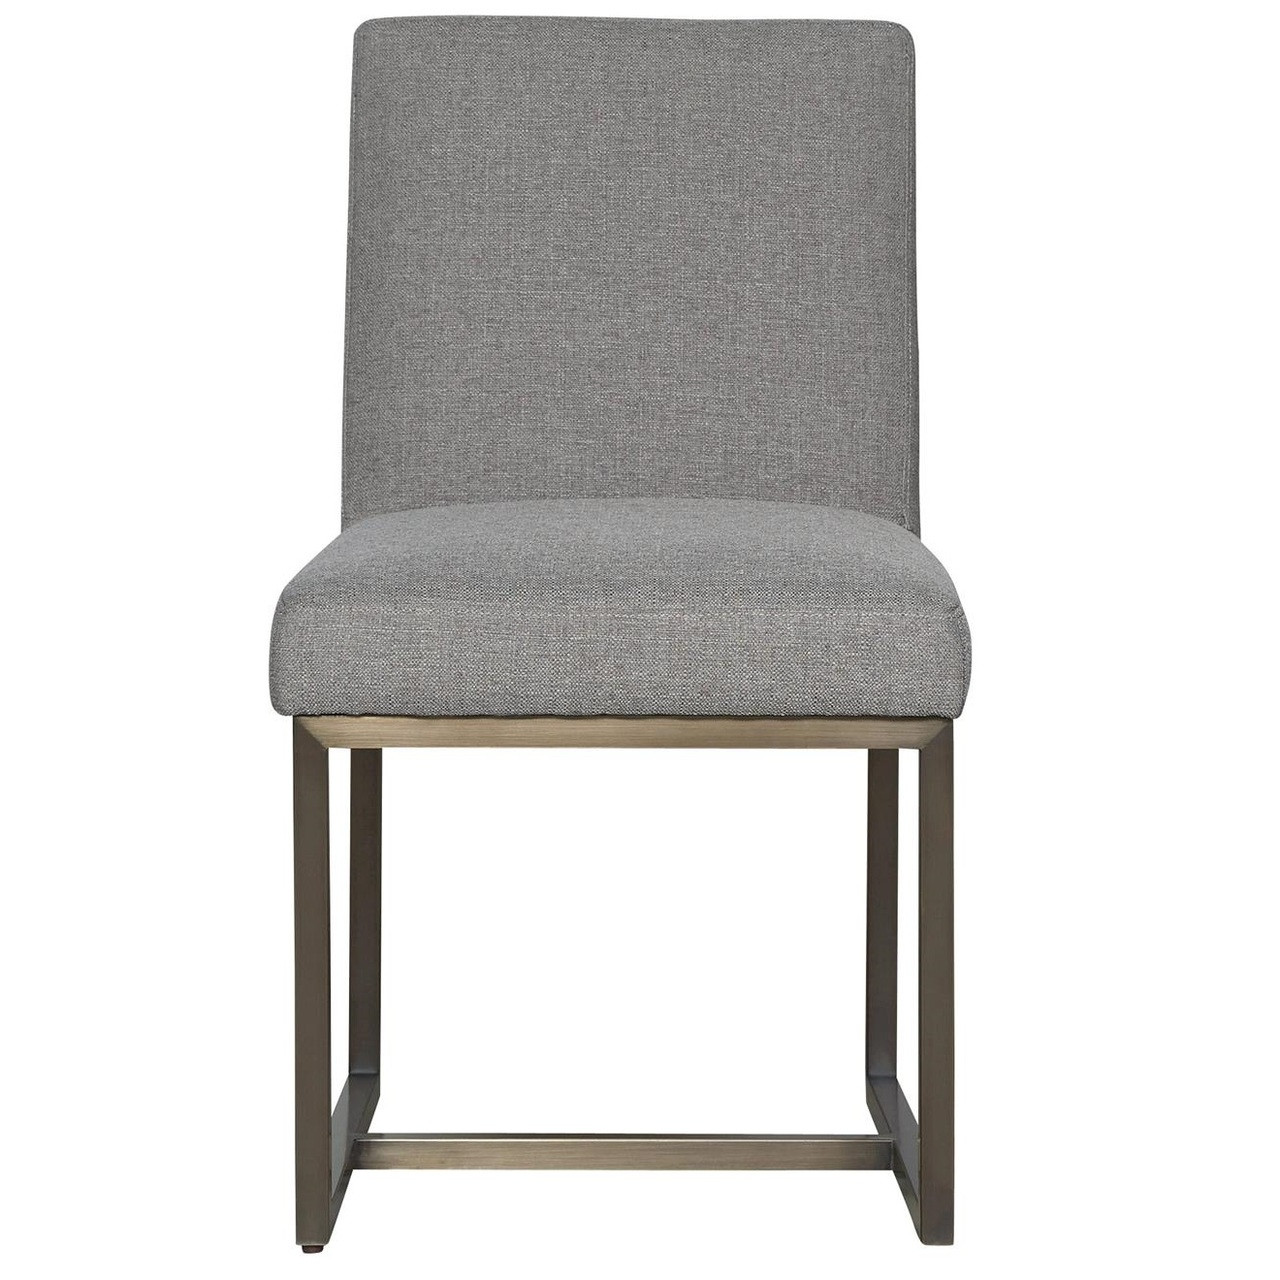 Delightful Cooper Modern Bronze Metal Leg Upholstered Side Chair